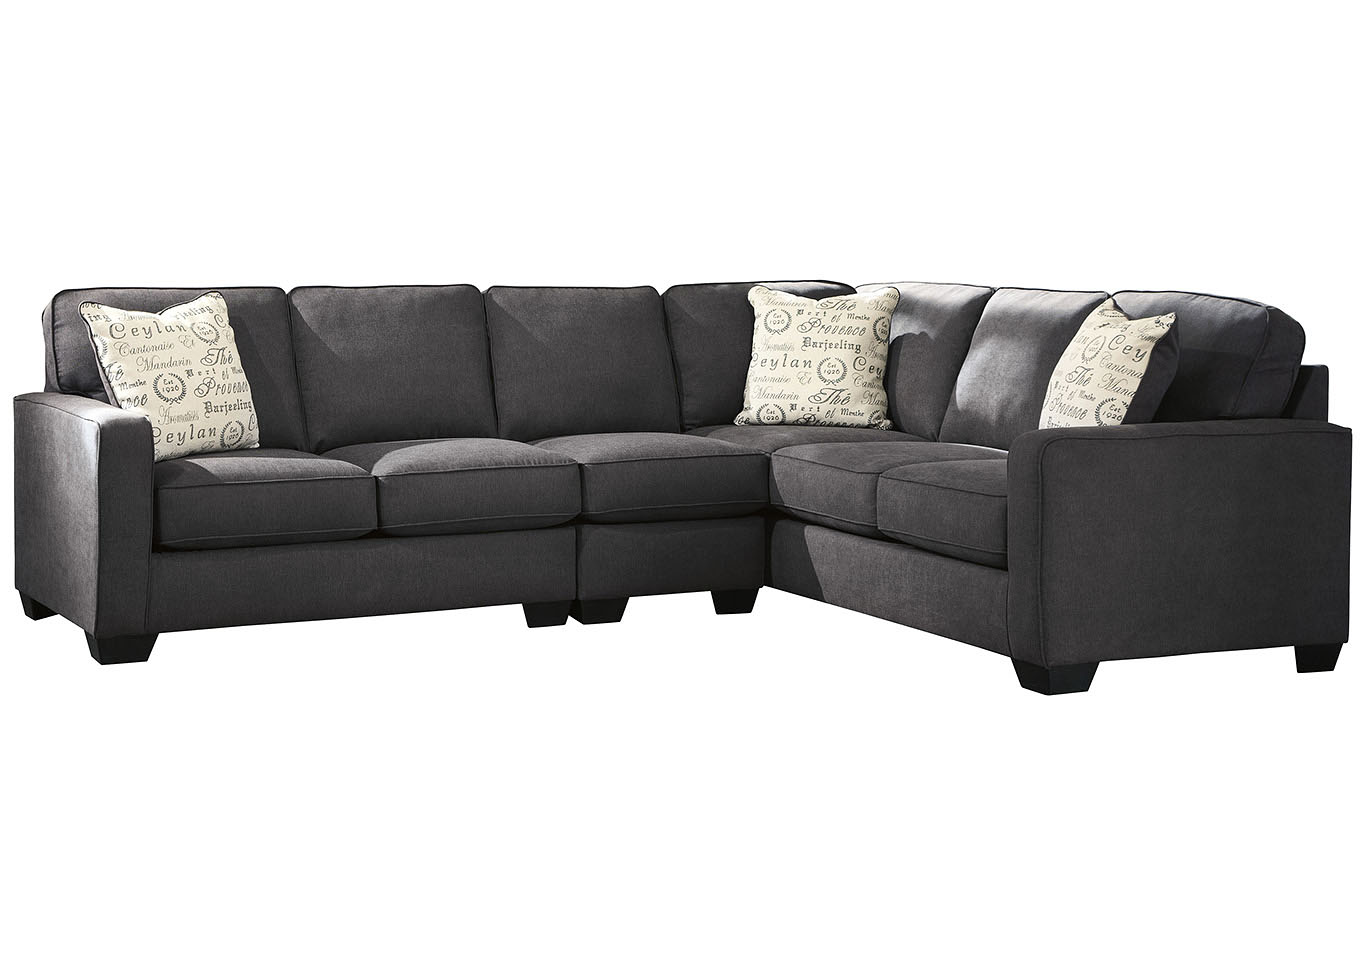 Alenya Charcoal RAF Extended Sectional,Signature Design By Ashley